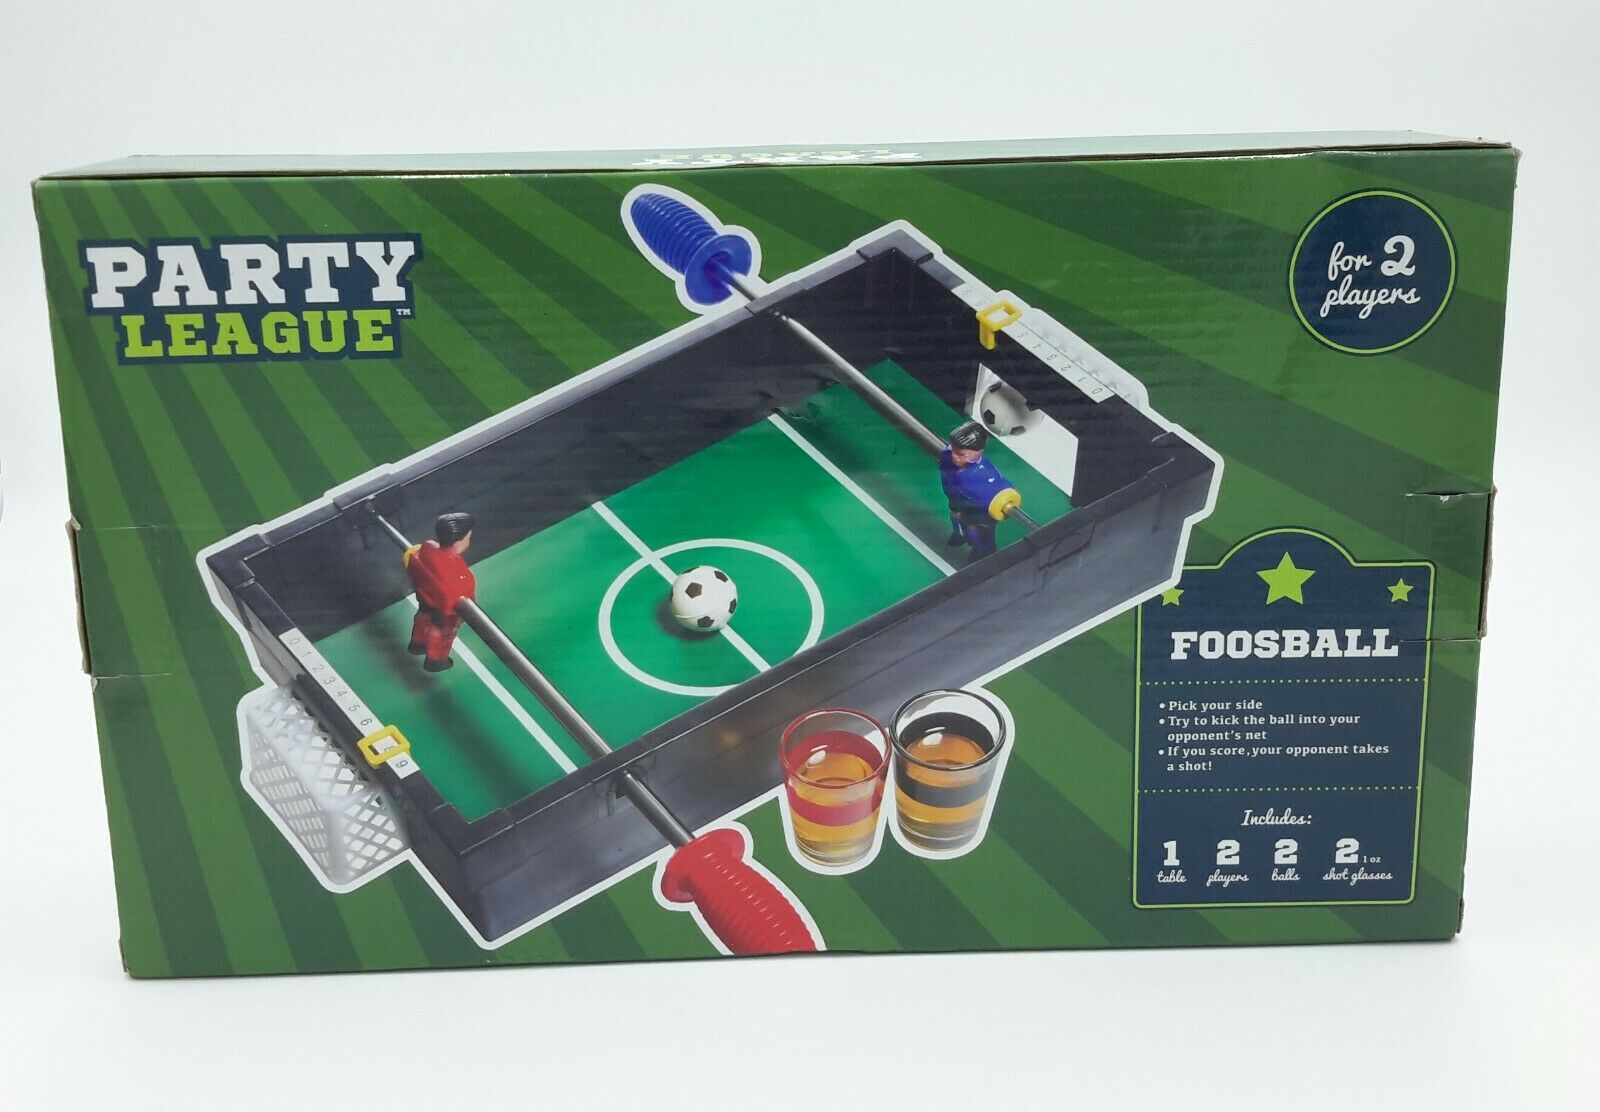 Party League Foosball Soccer Table Top Game with 2 Shot Glas